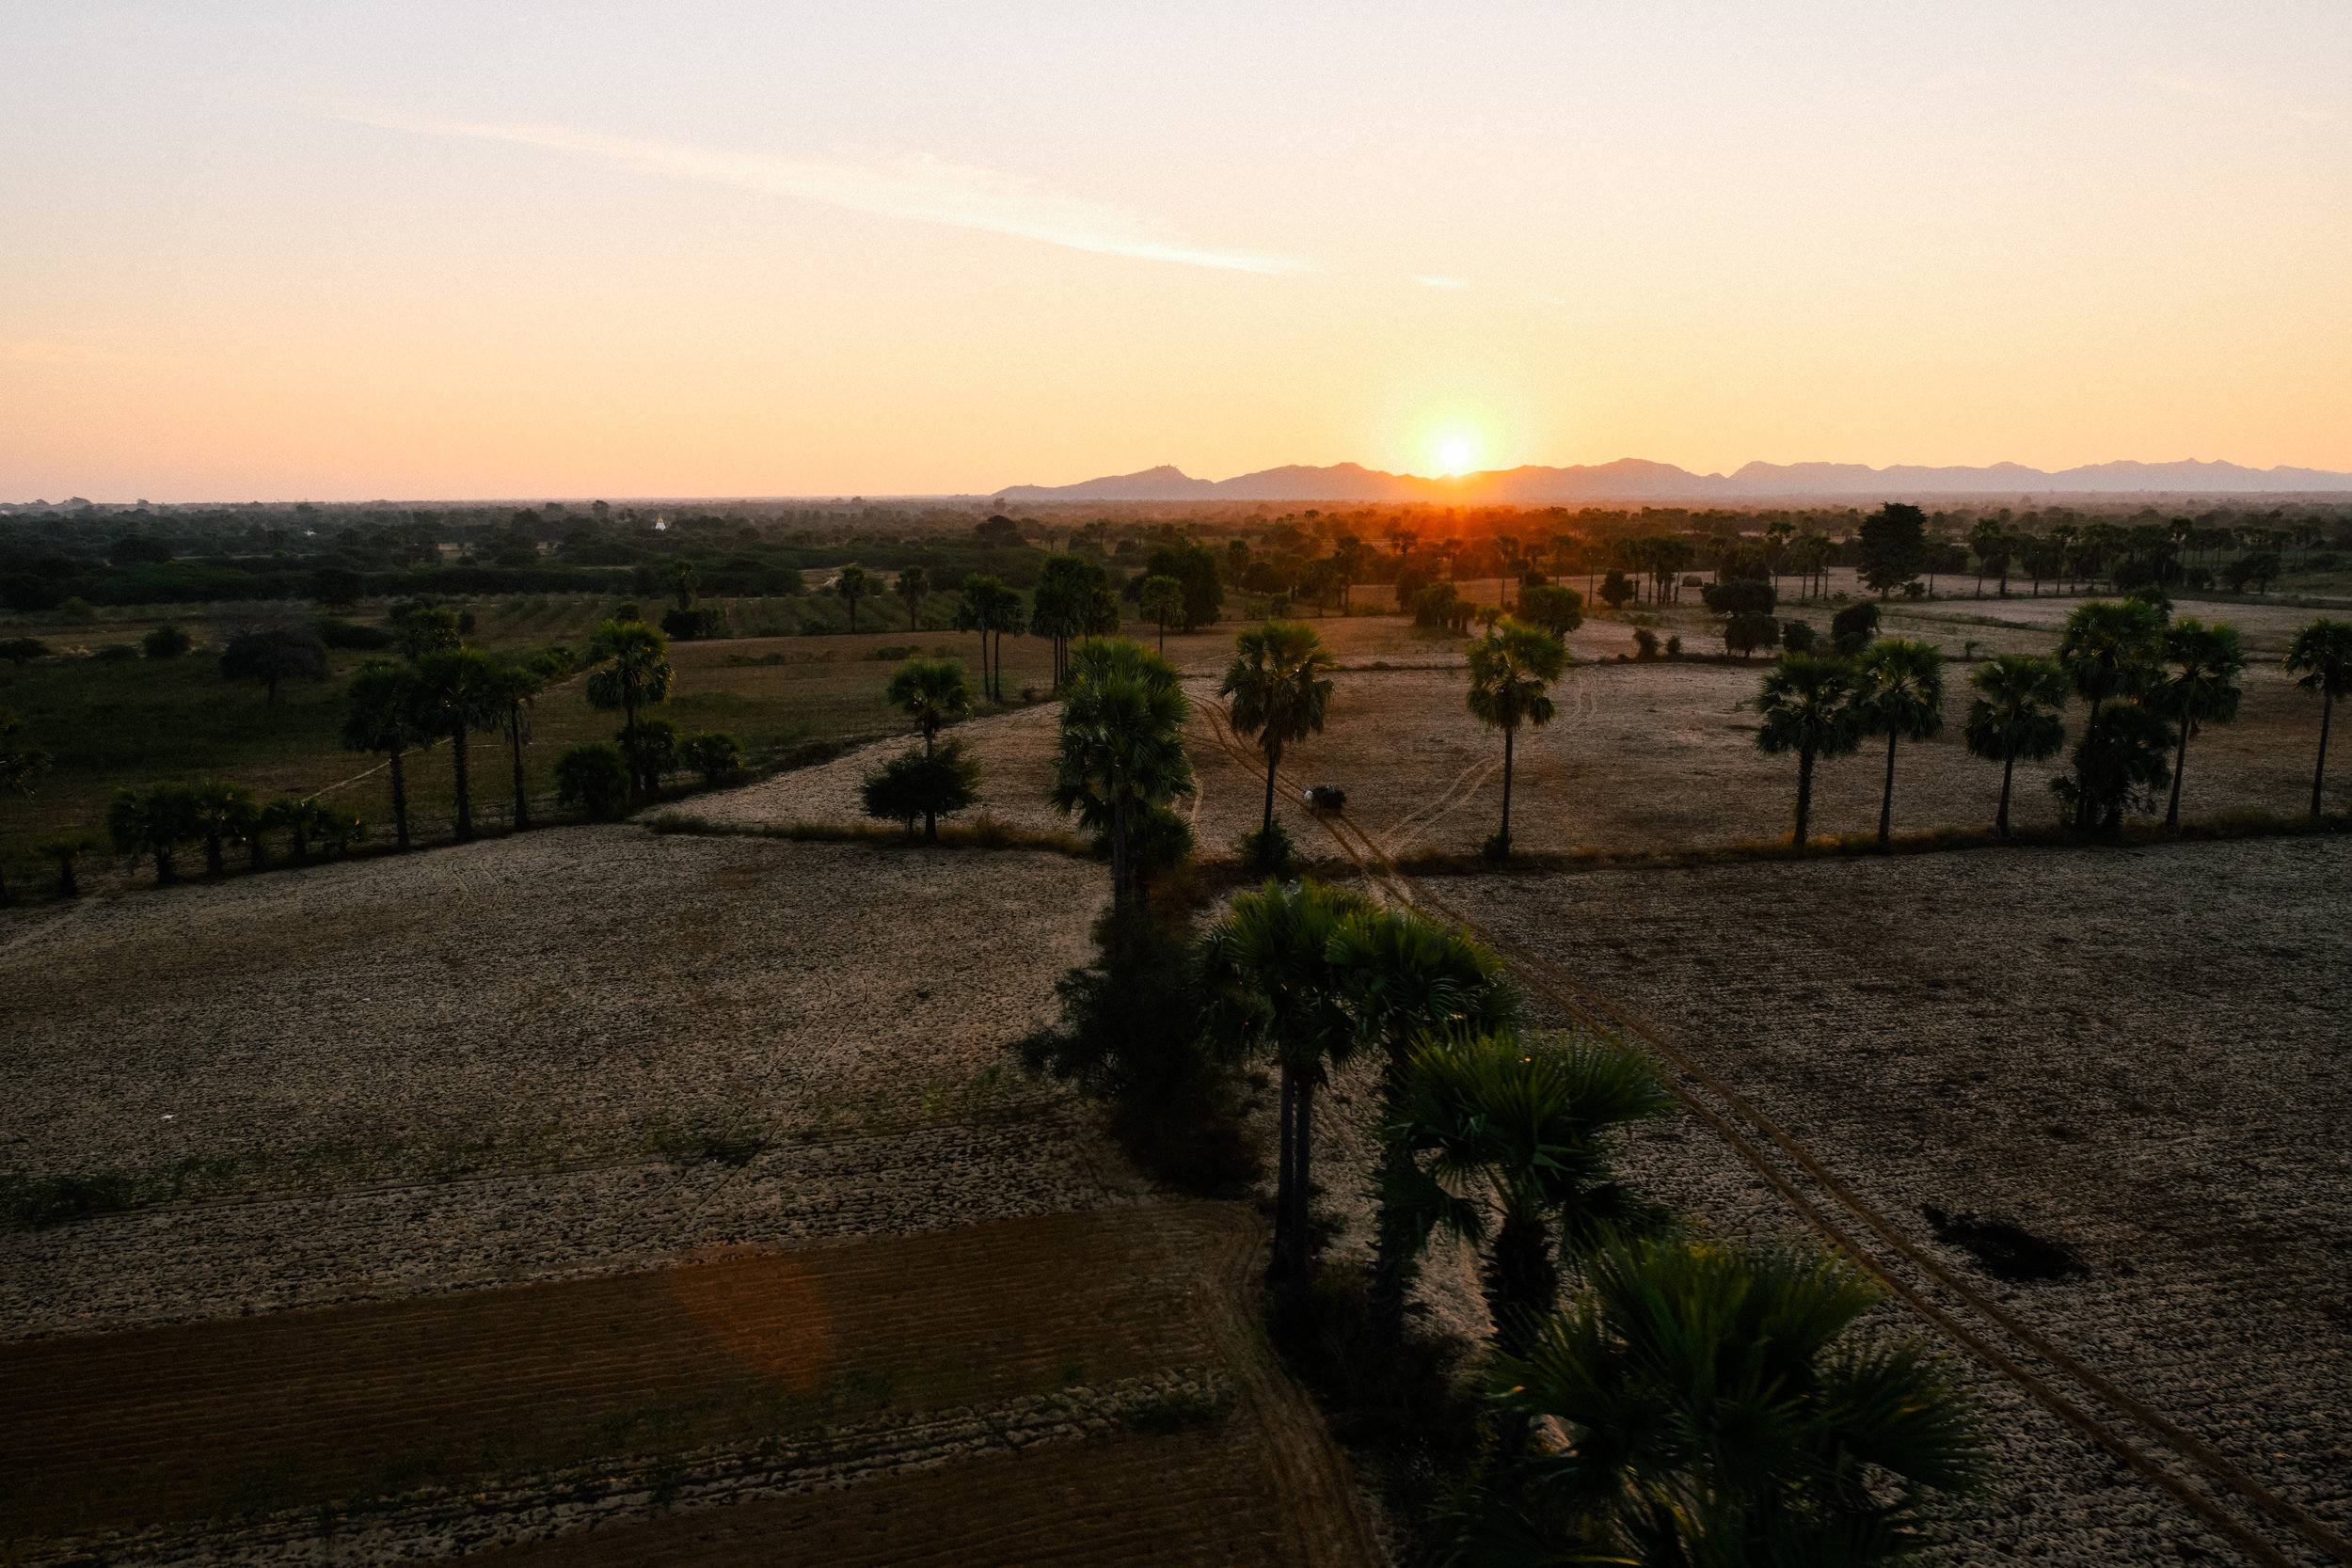 sunrise view from a hot air balloon in Myanmar